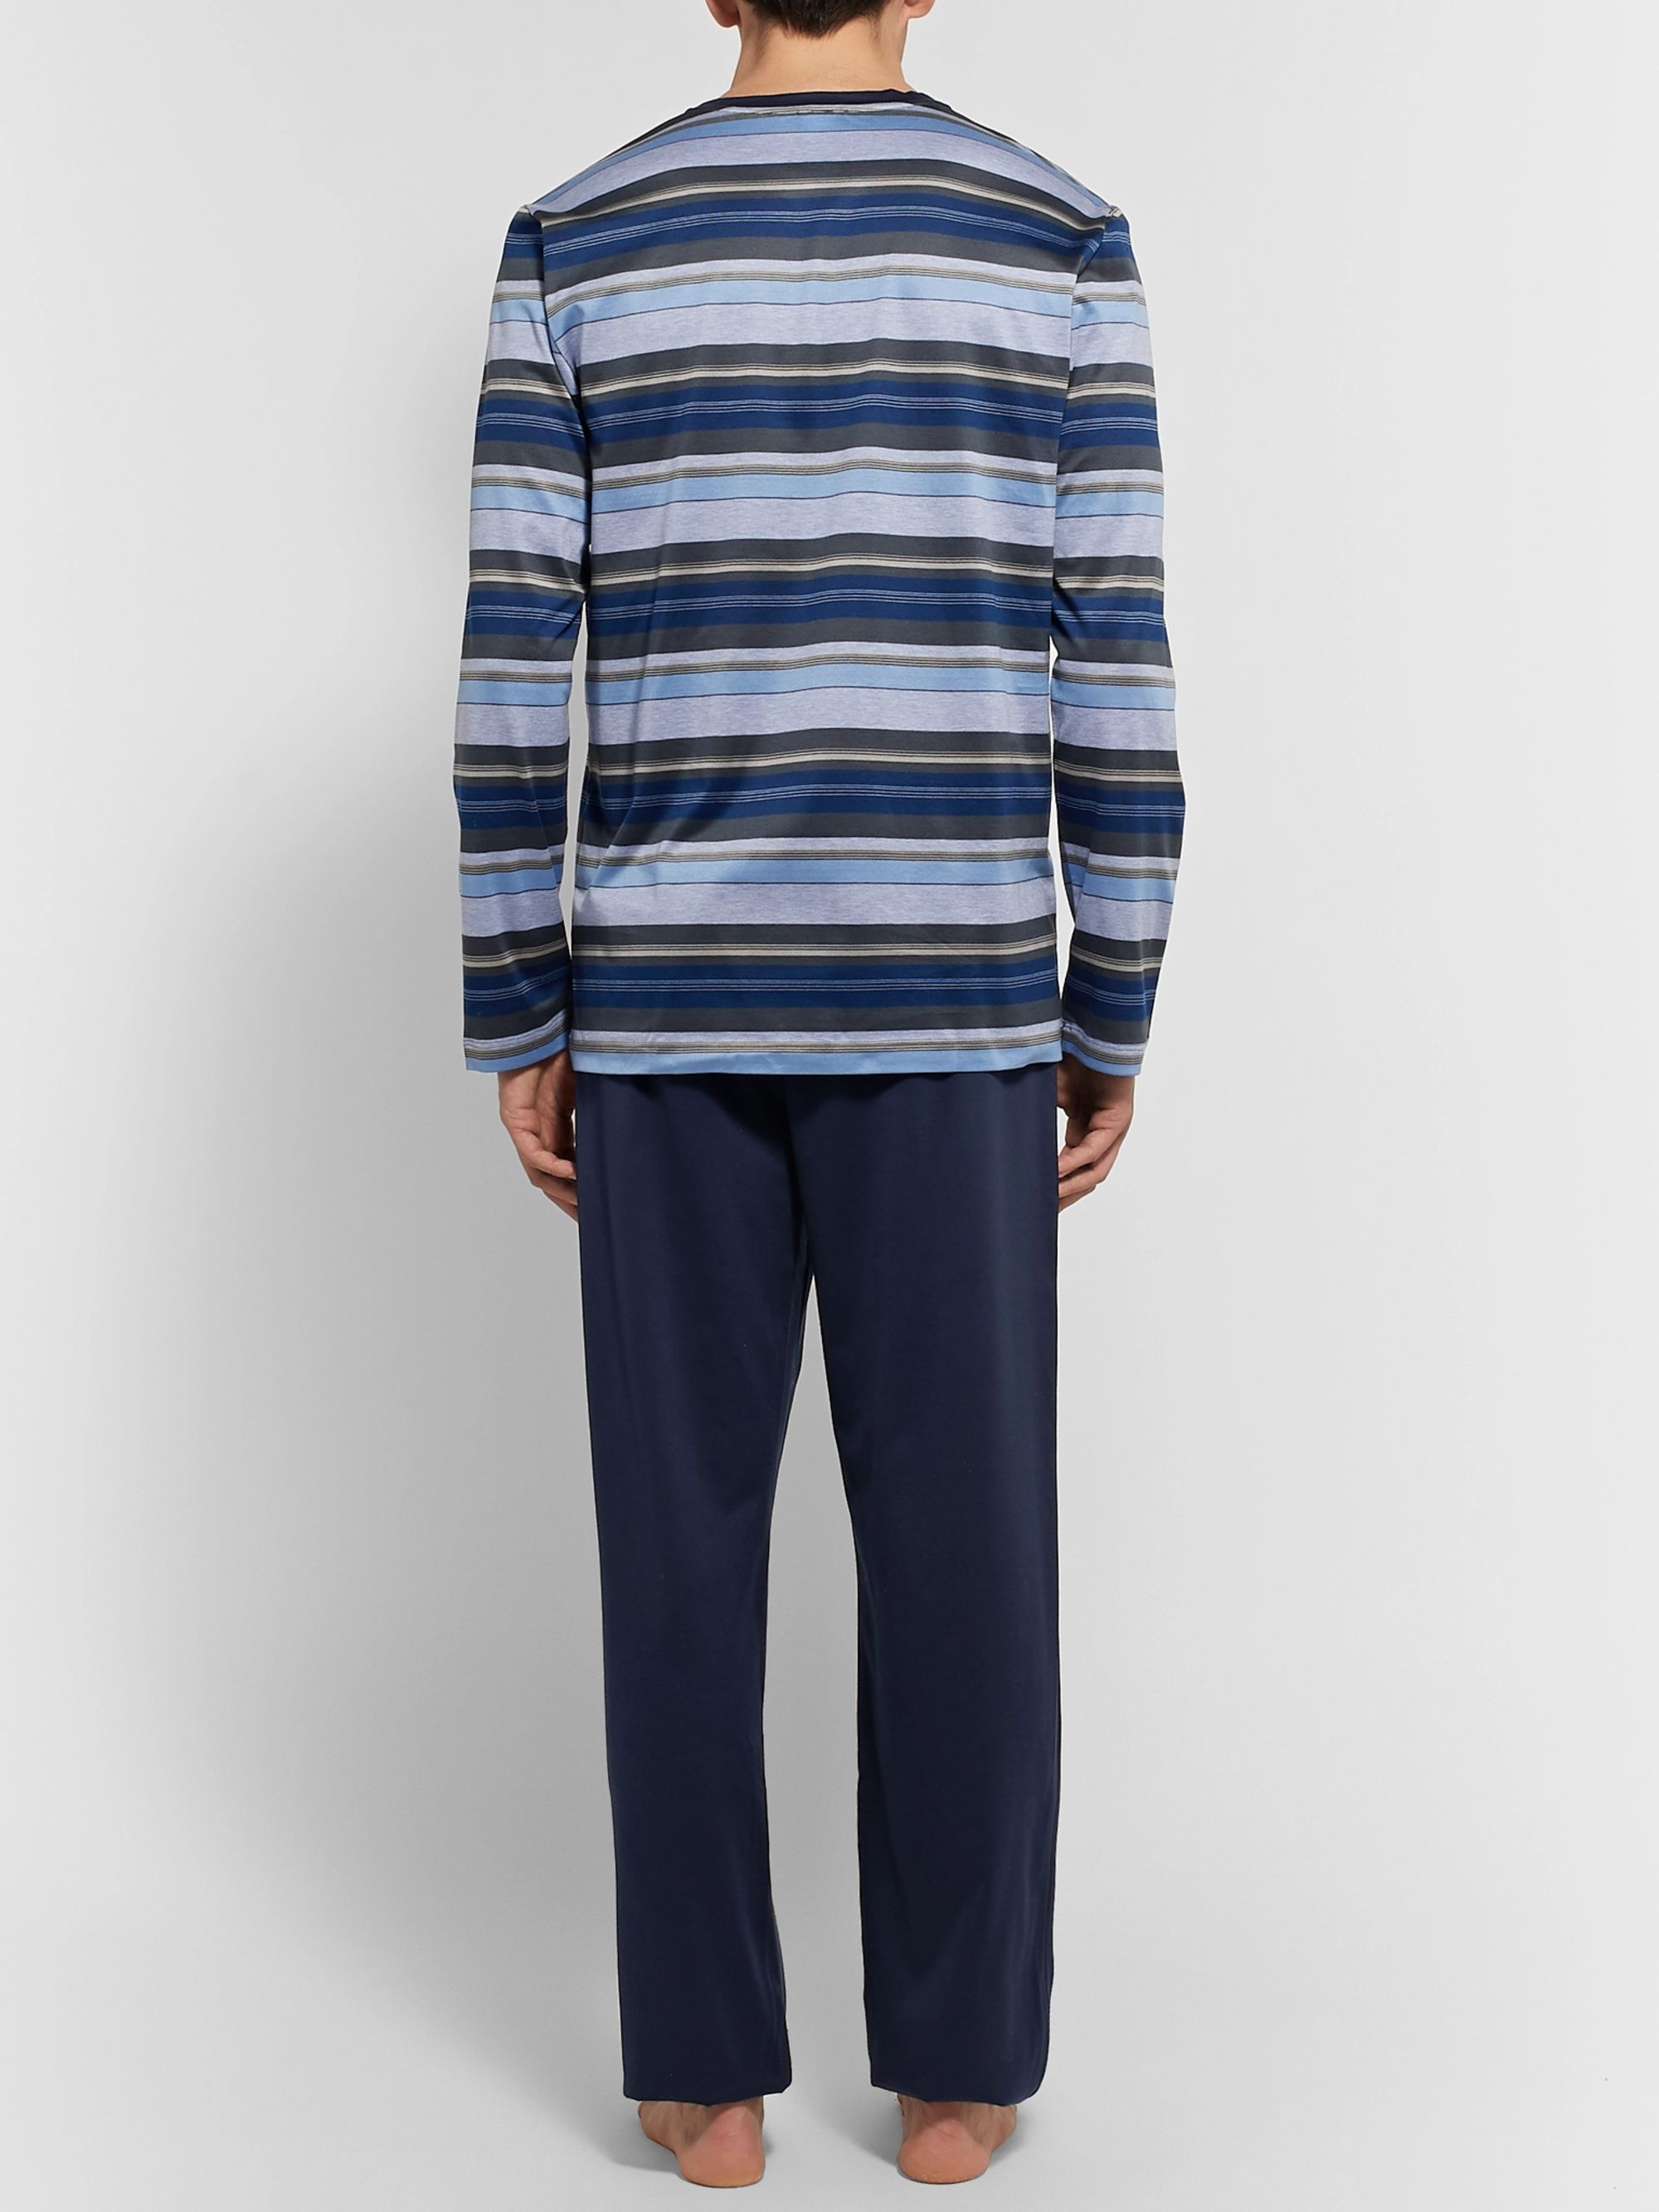 Hanro Jolan Mercerised Striped Cotton-Jersey Pyjama Set